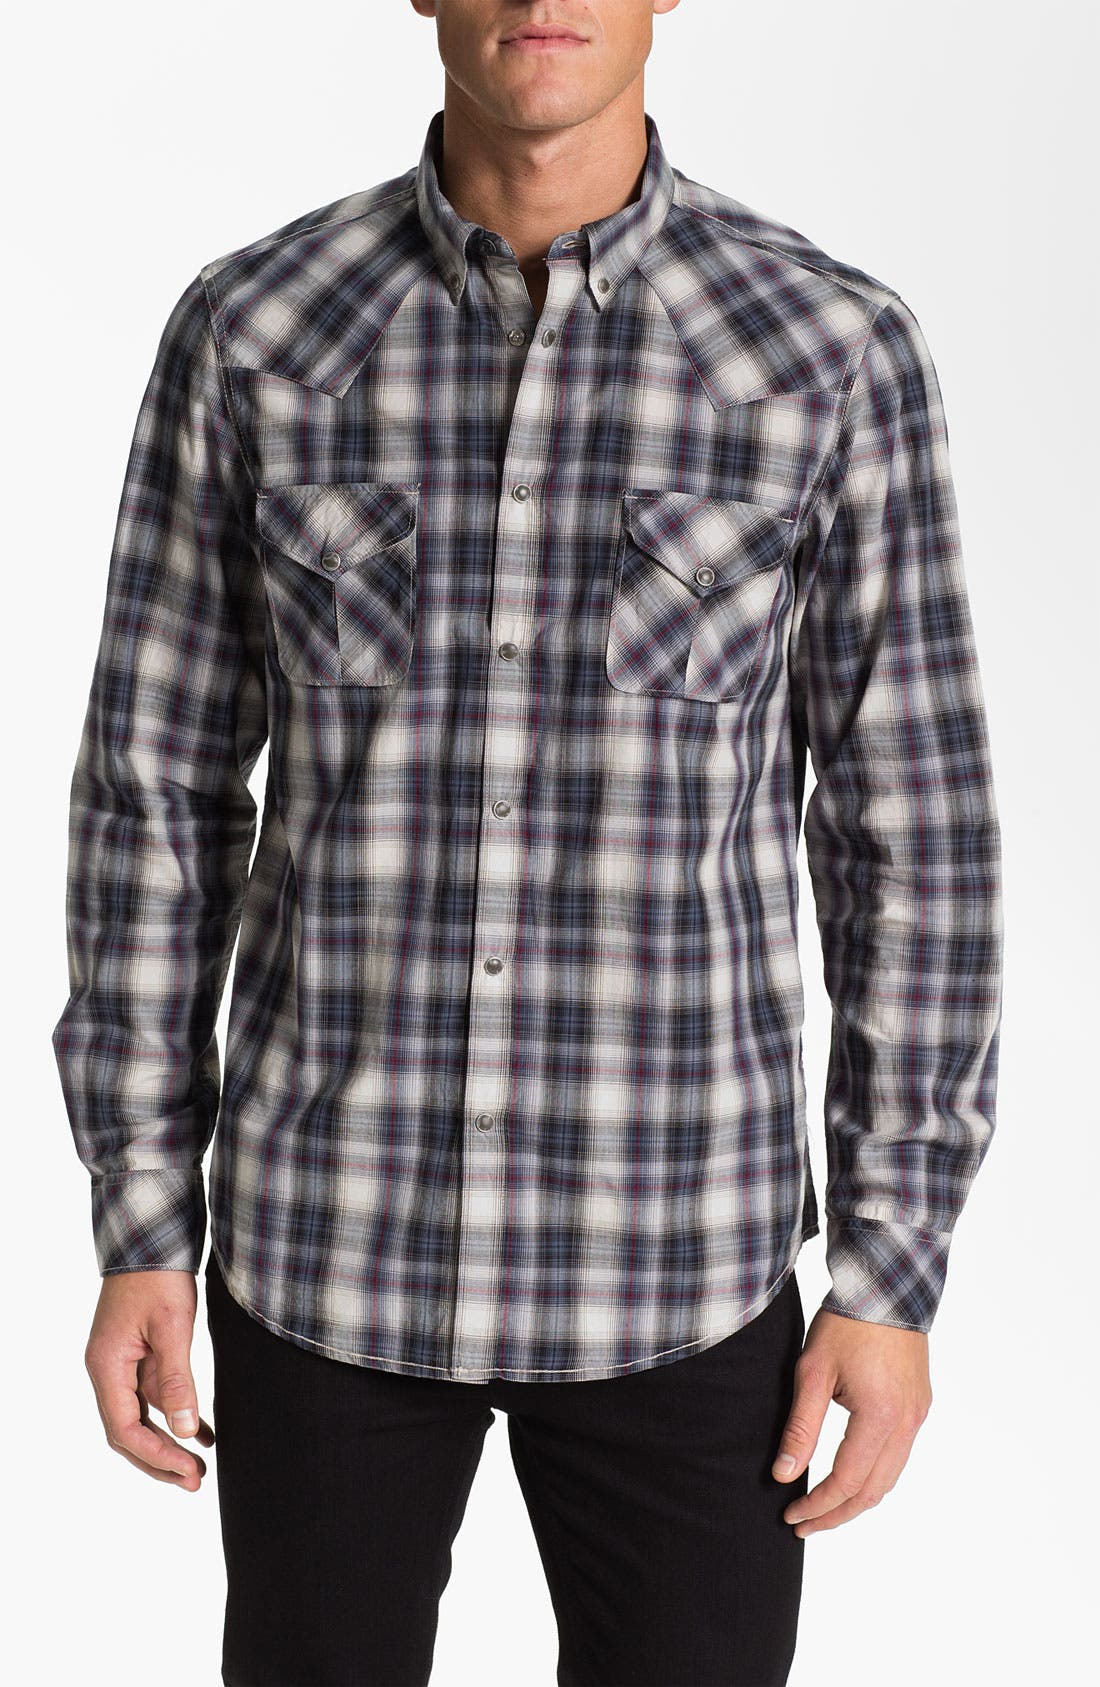 Alternate Image 1 Selected - Ben Sherman 'Clerkenwell' Plaid Woven Shirt